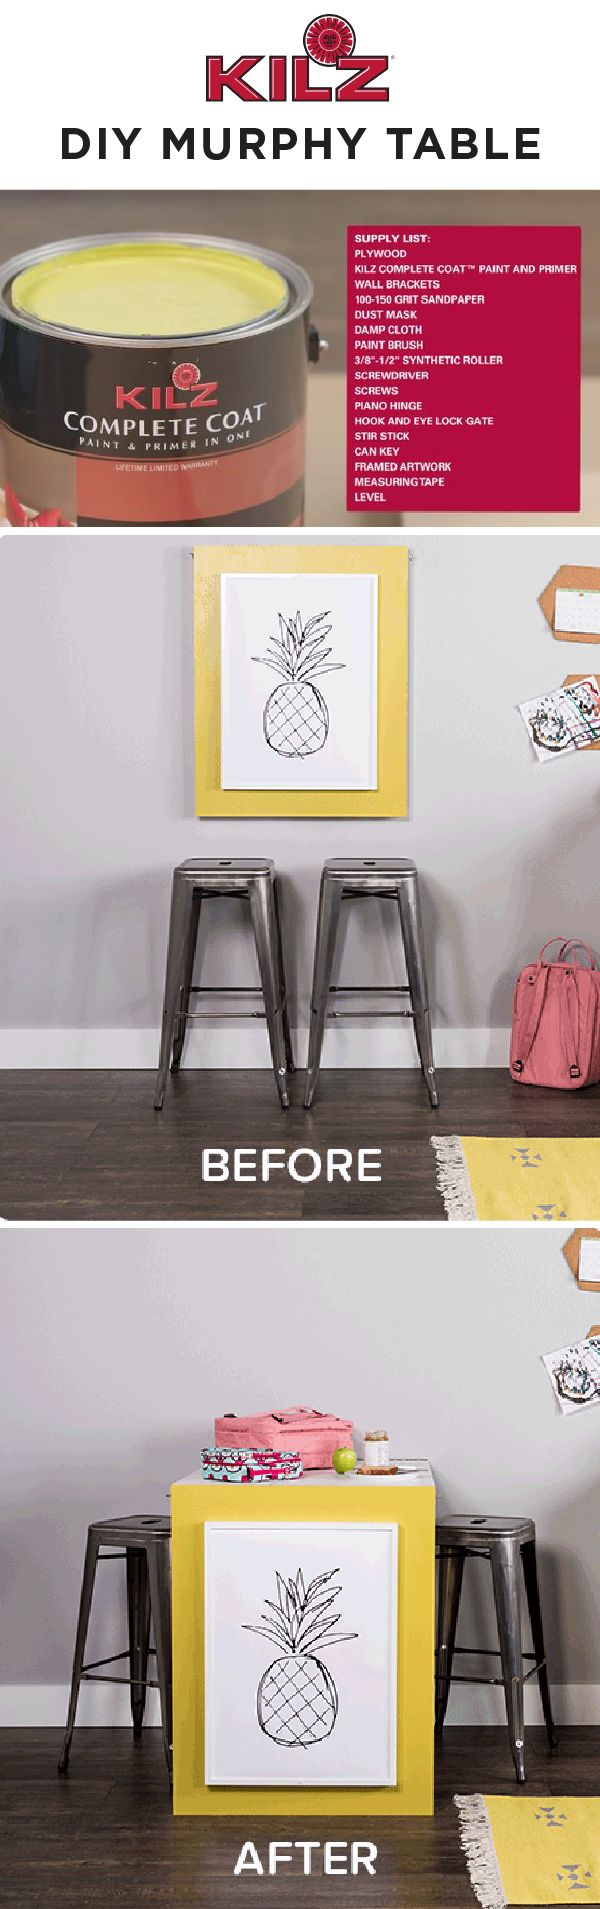 Want to add storage and functionality to your kitchen? Check out this DIY murphy table tutorial. This clever hack is a space-saving table and wall décor in one. Plus, thanks to a fresh coat of KILZ Complete Coat Paint & Primer In One, you can add a pop of bright color to your home. Click to learn more and buy your project supplies.